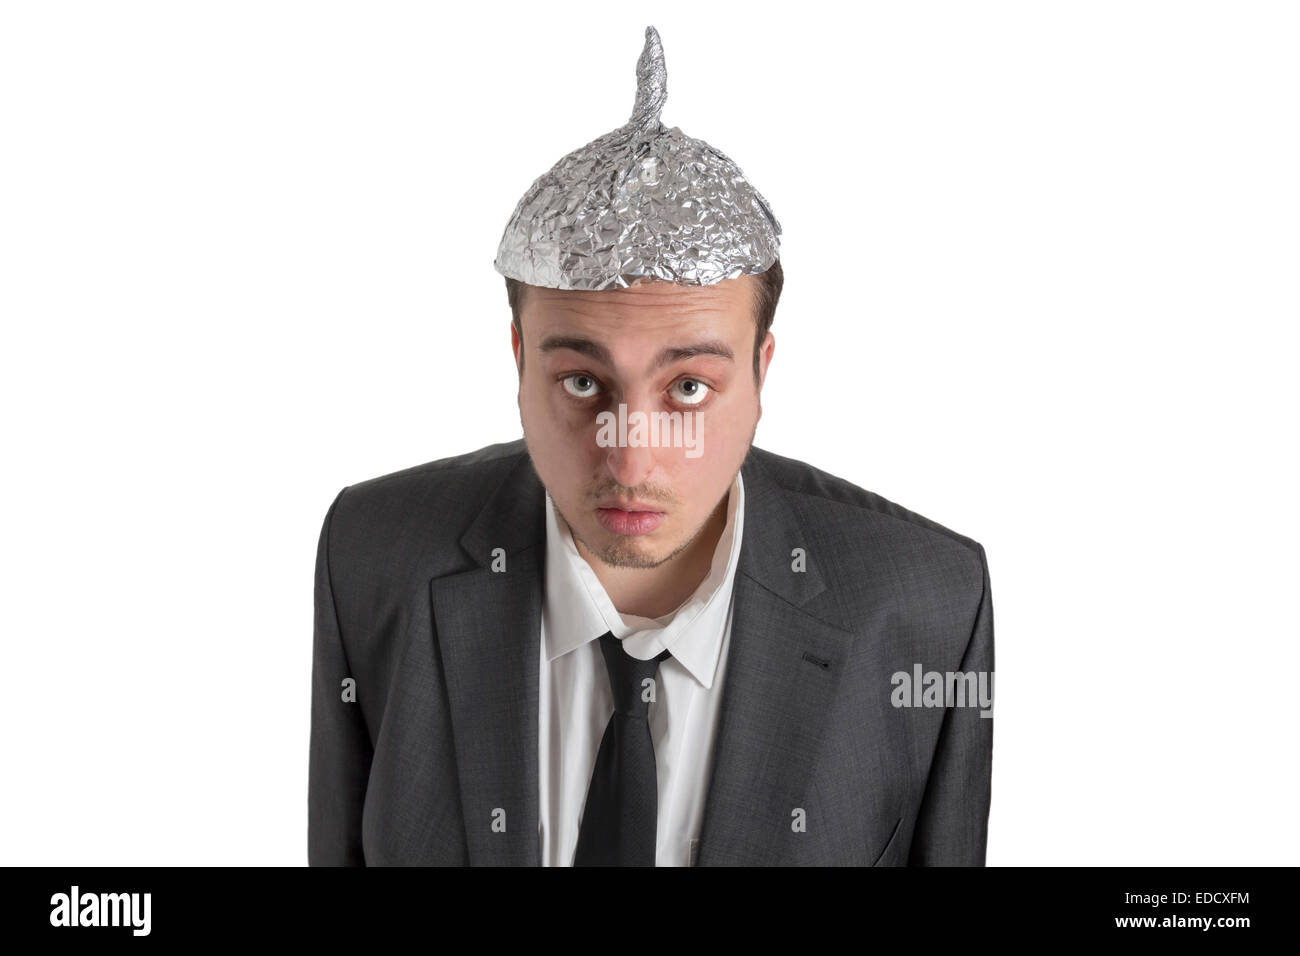 distraught looking conspiracy believer in suit with aluminum foil head isolated on white background - Stock Image